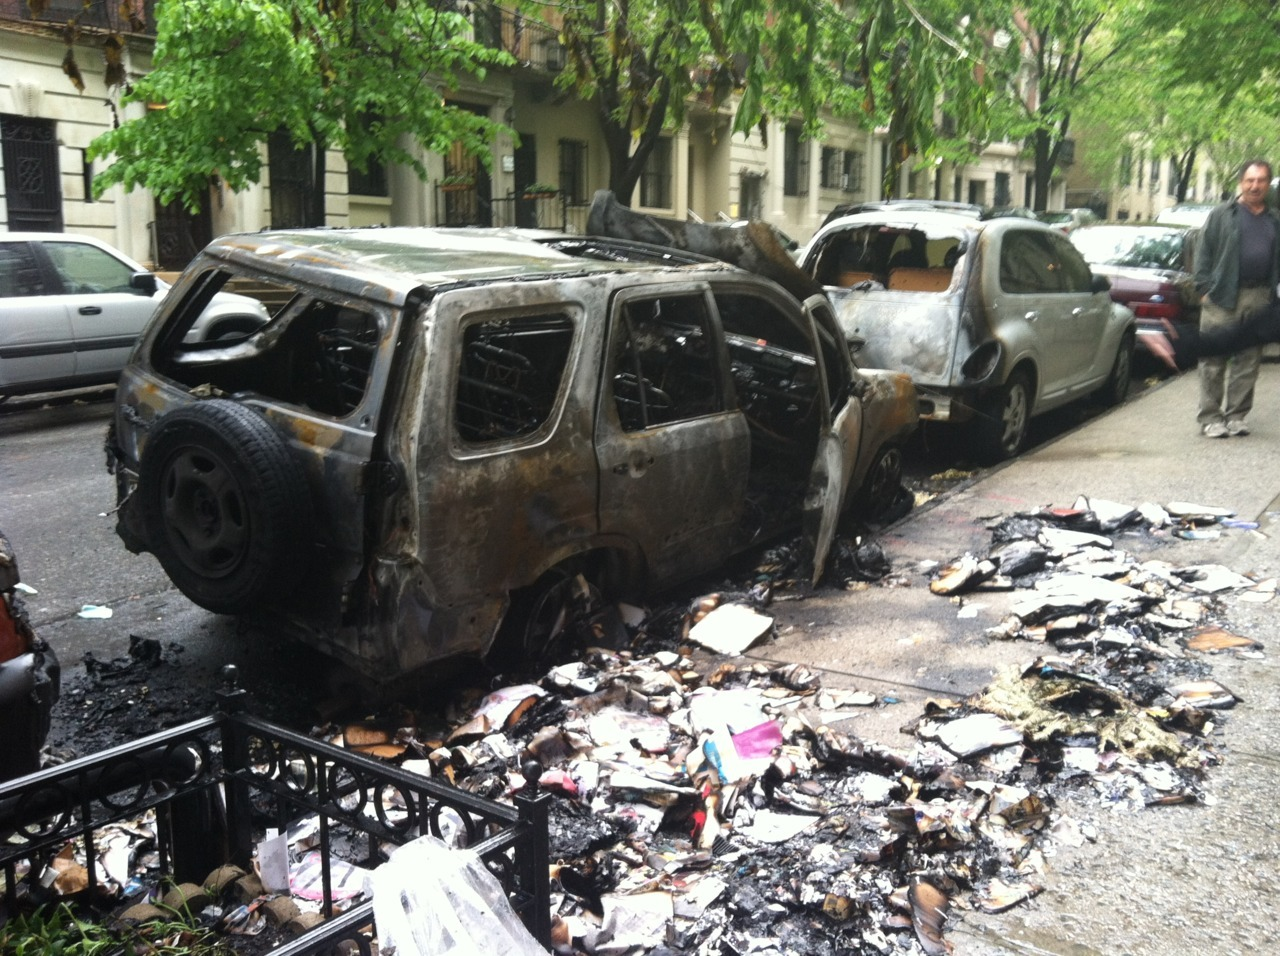 Garbage fire destroyed a vehicle on W. 100th St.